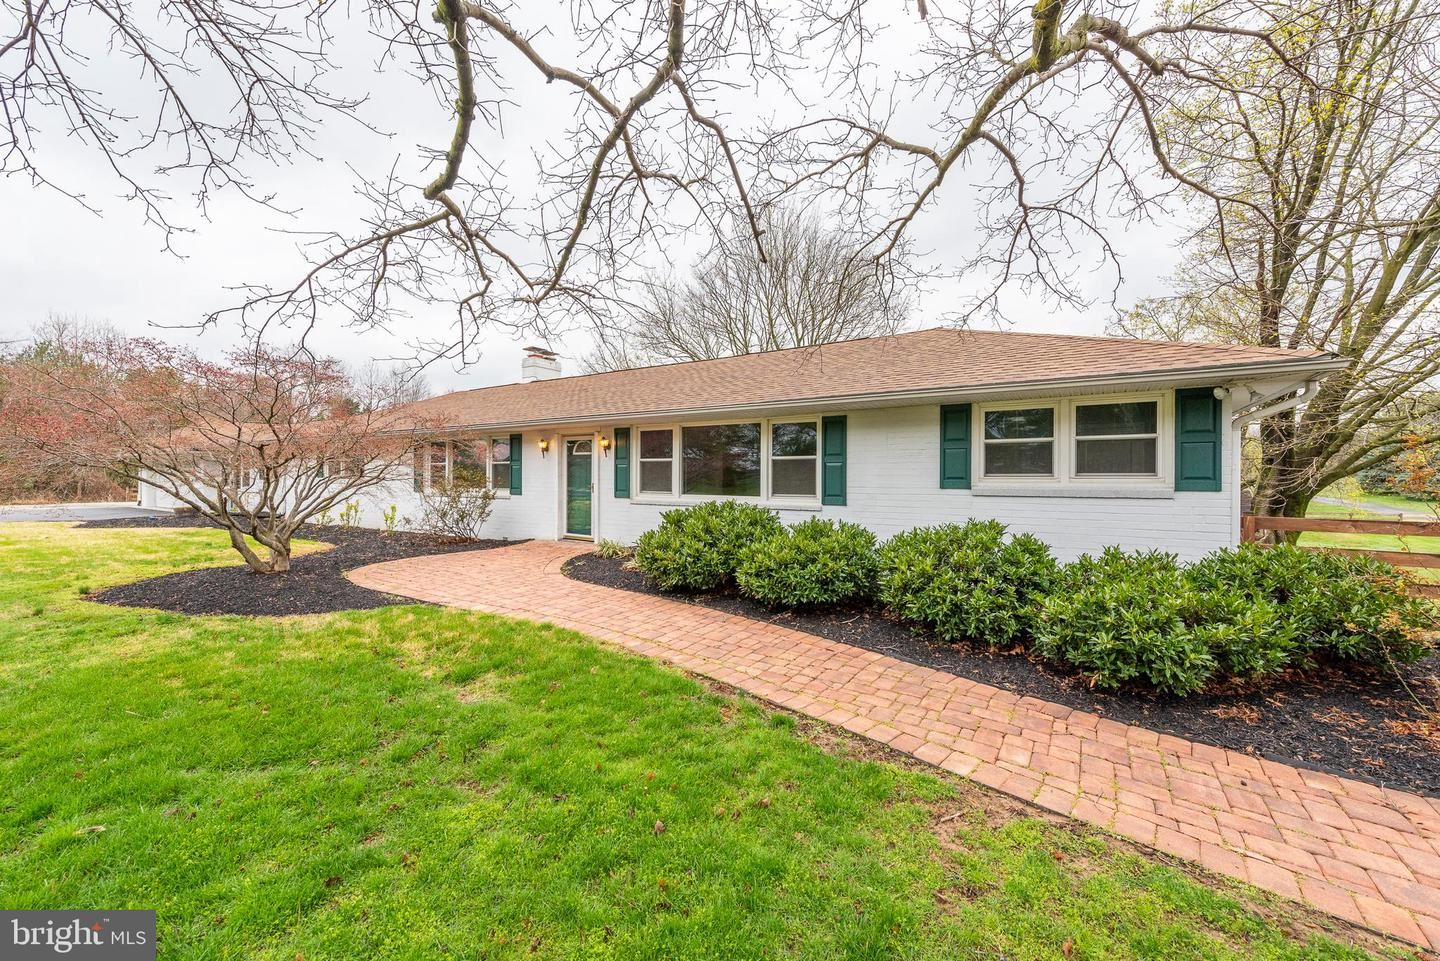 14809 BURNTWOODS RD, Glenwood, MD 21738 - MLS#: MDHW277488